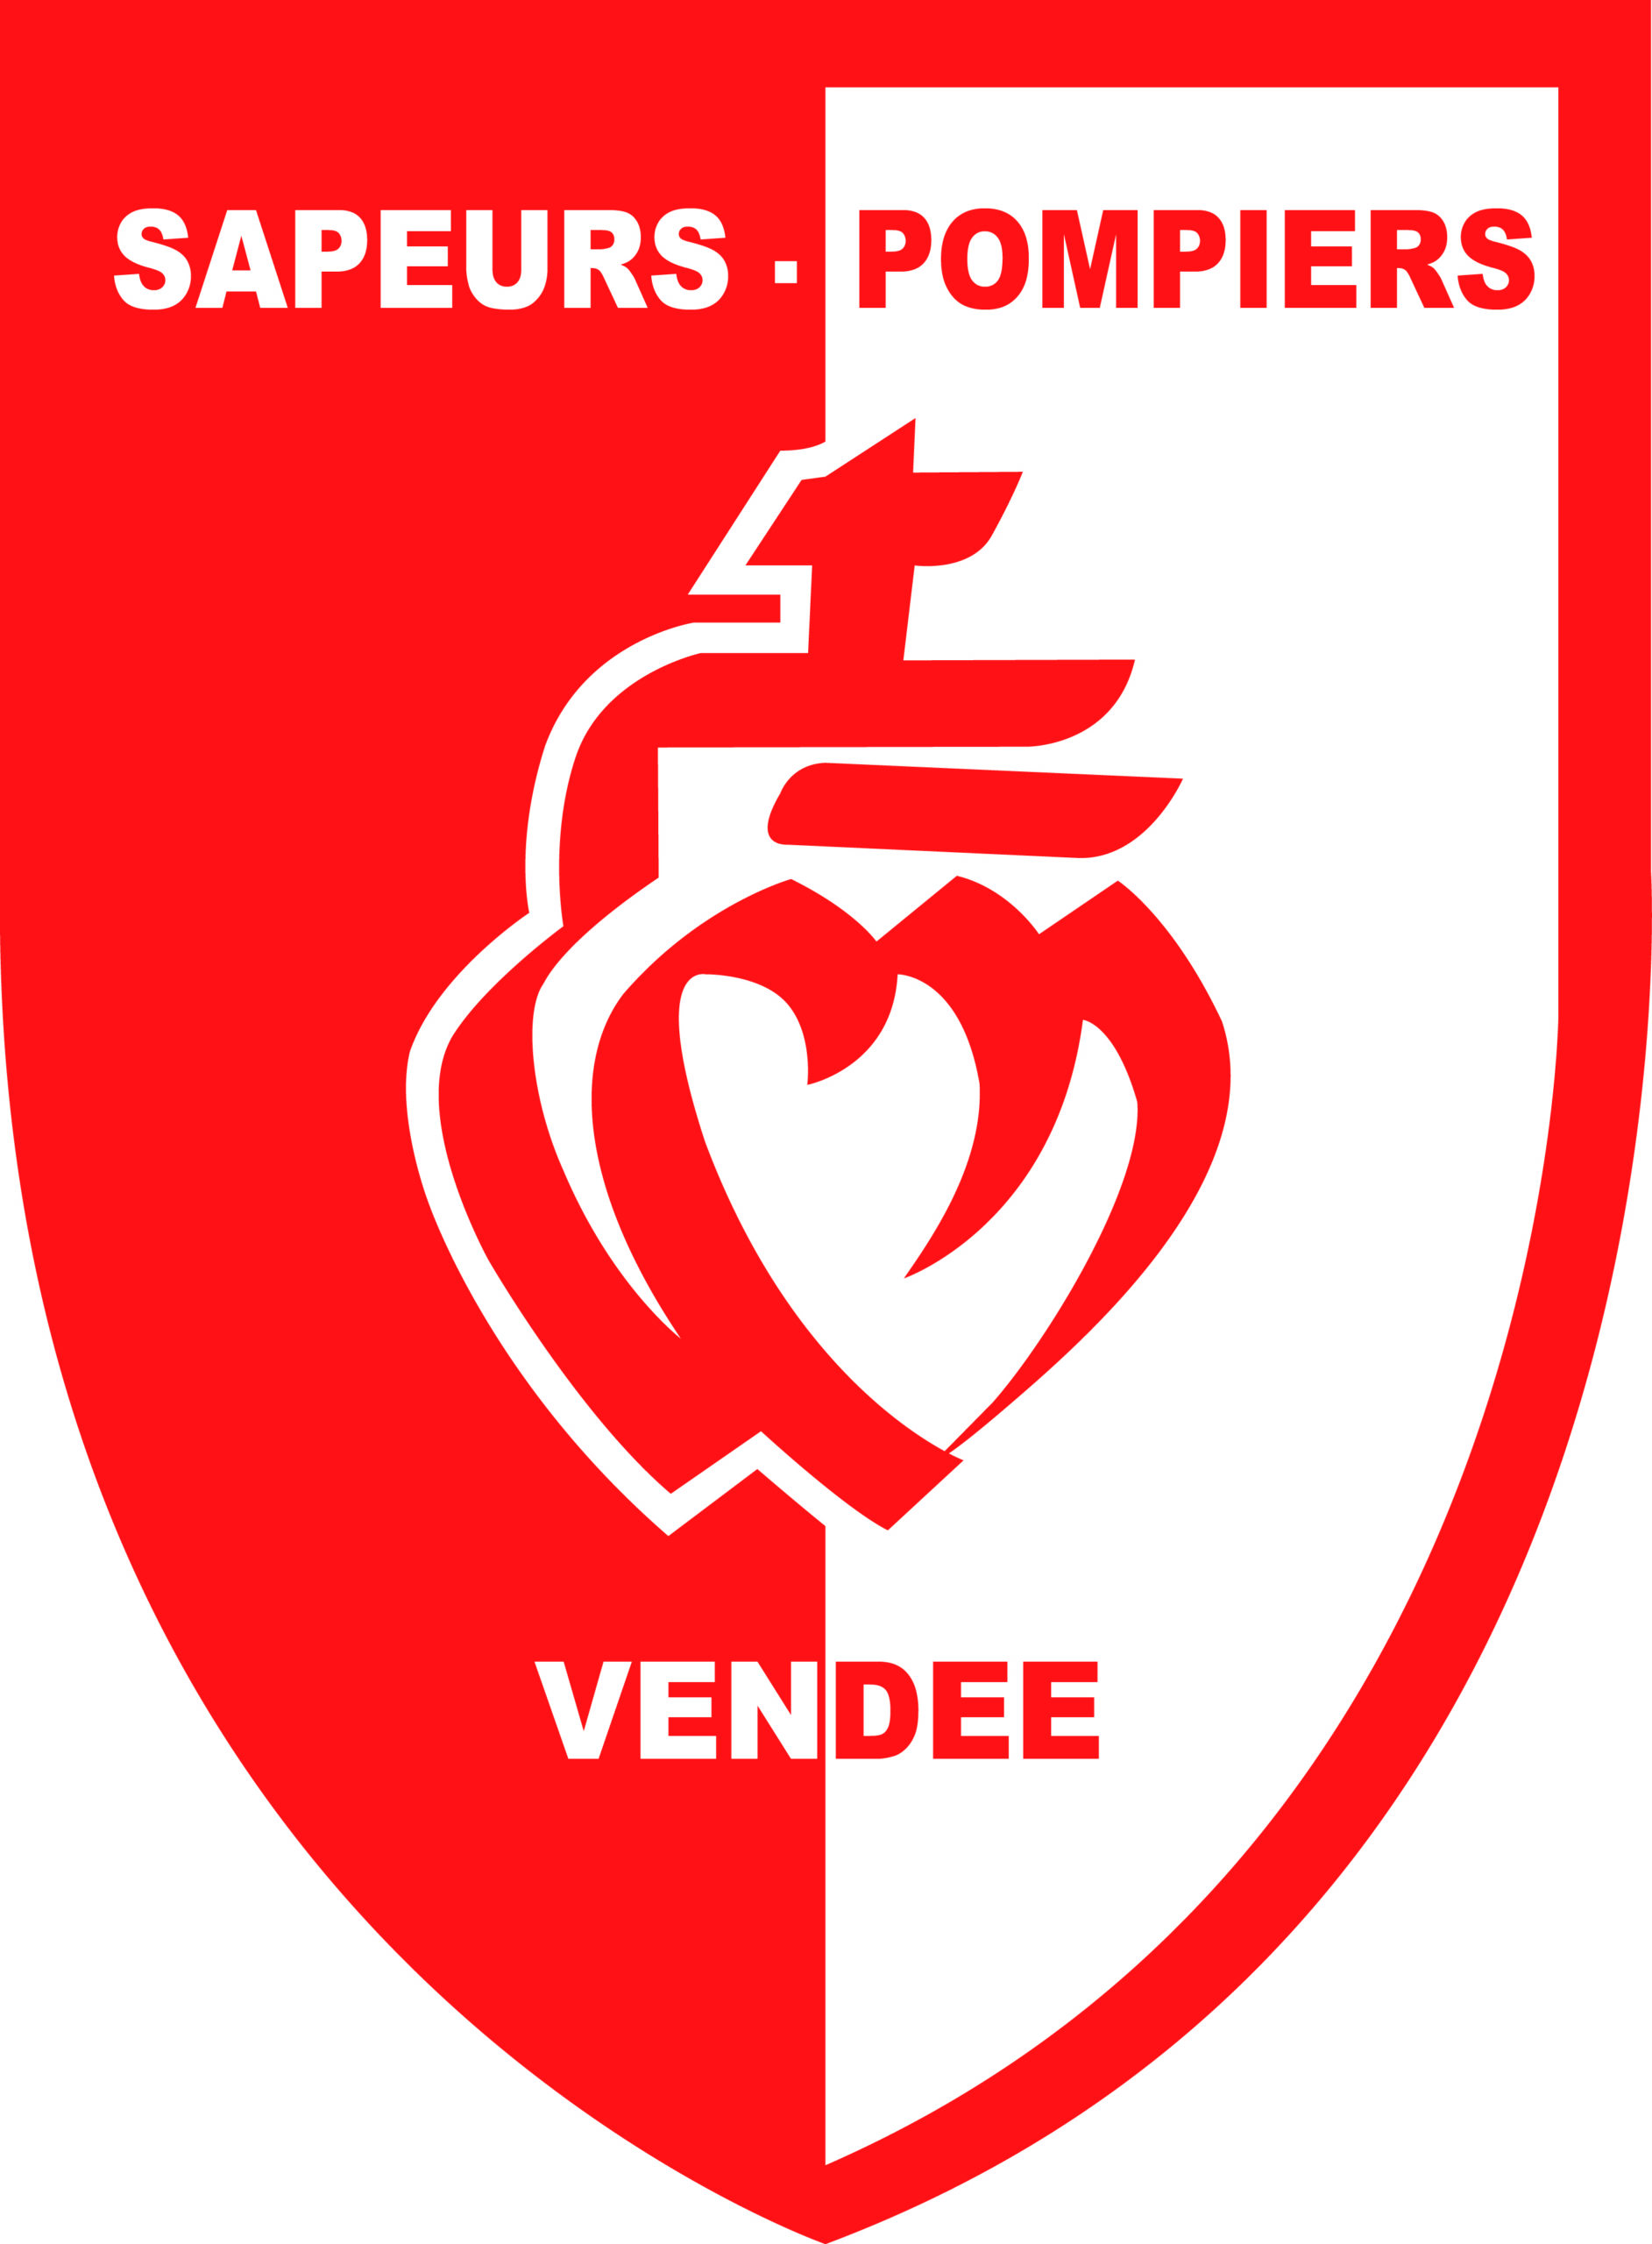 85logo_LOGO_SP_VENDEE-scaled.jpg